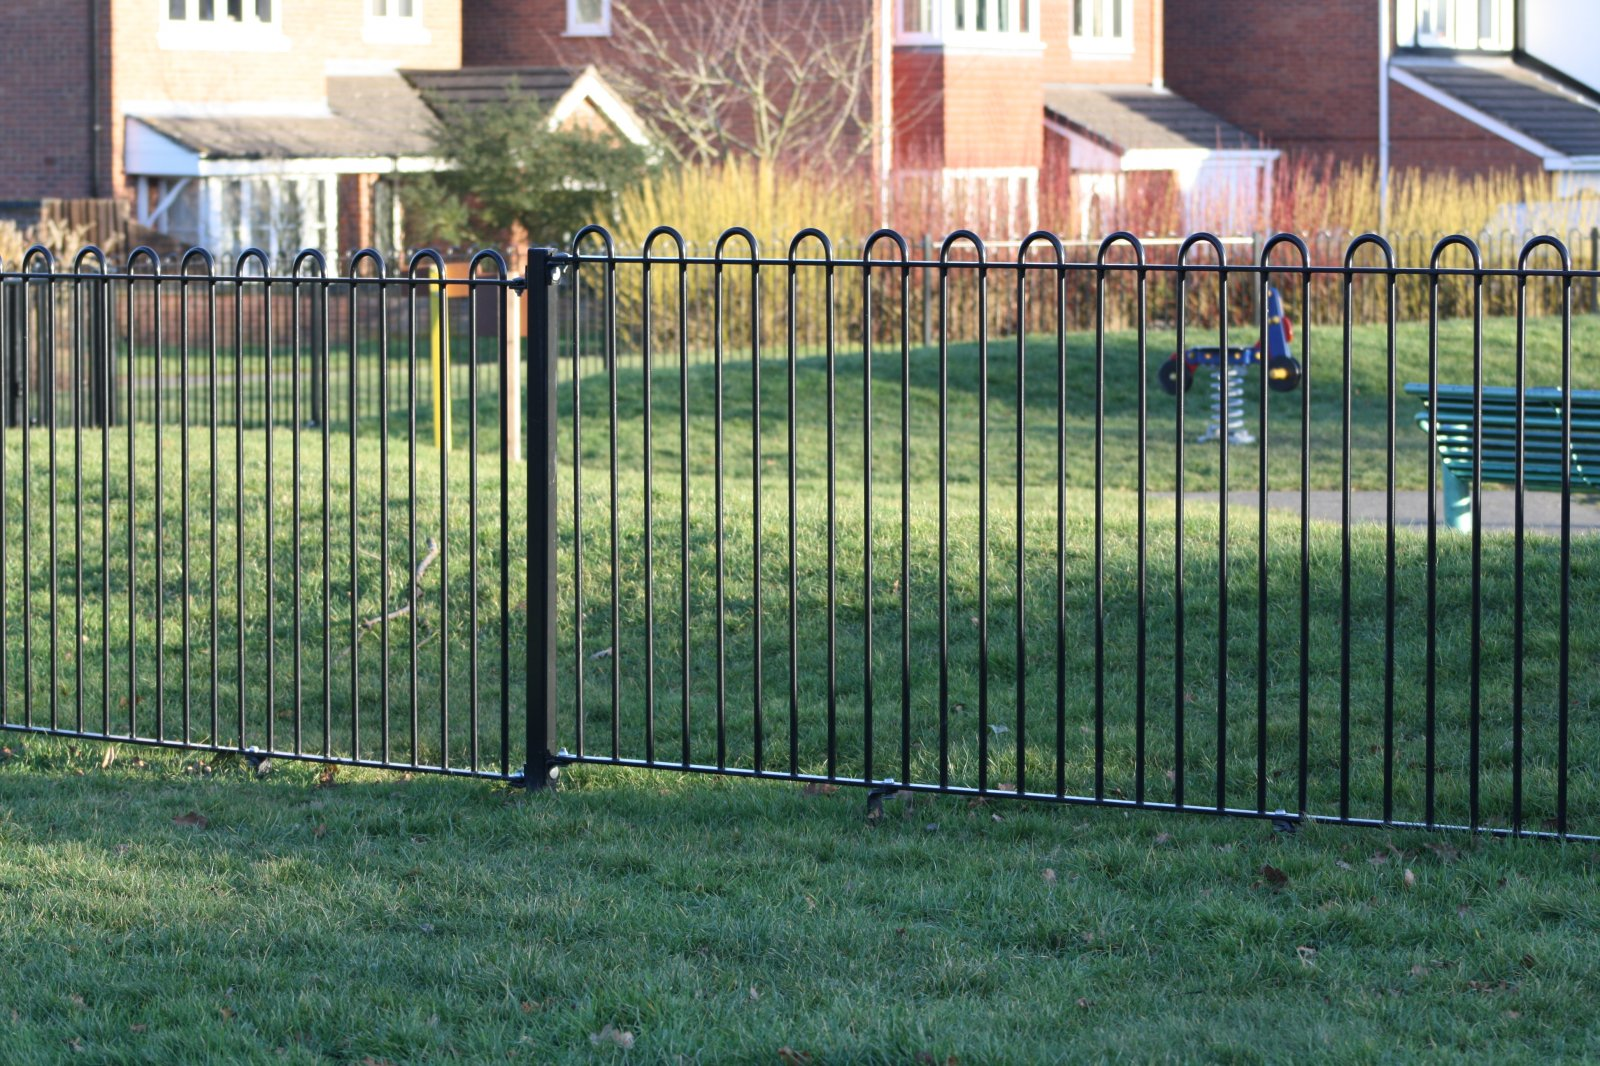 Play area fencing replaced